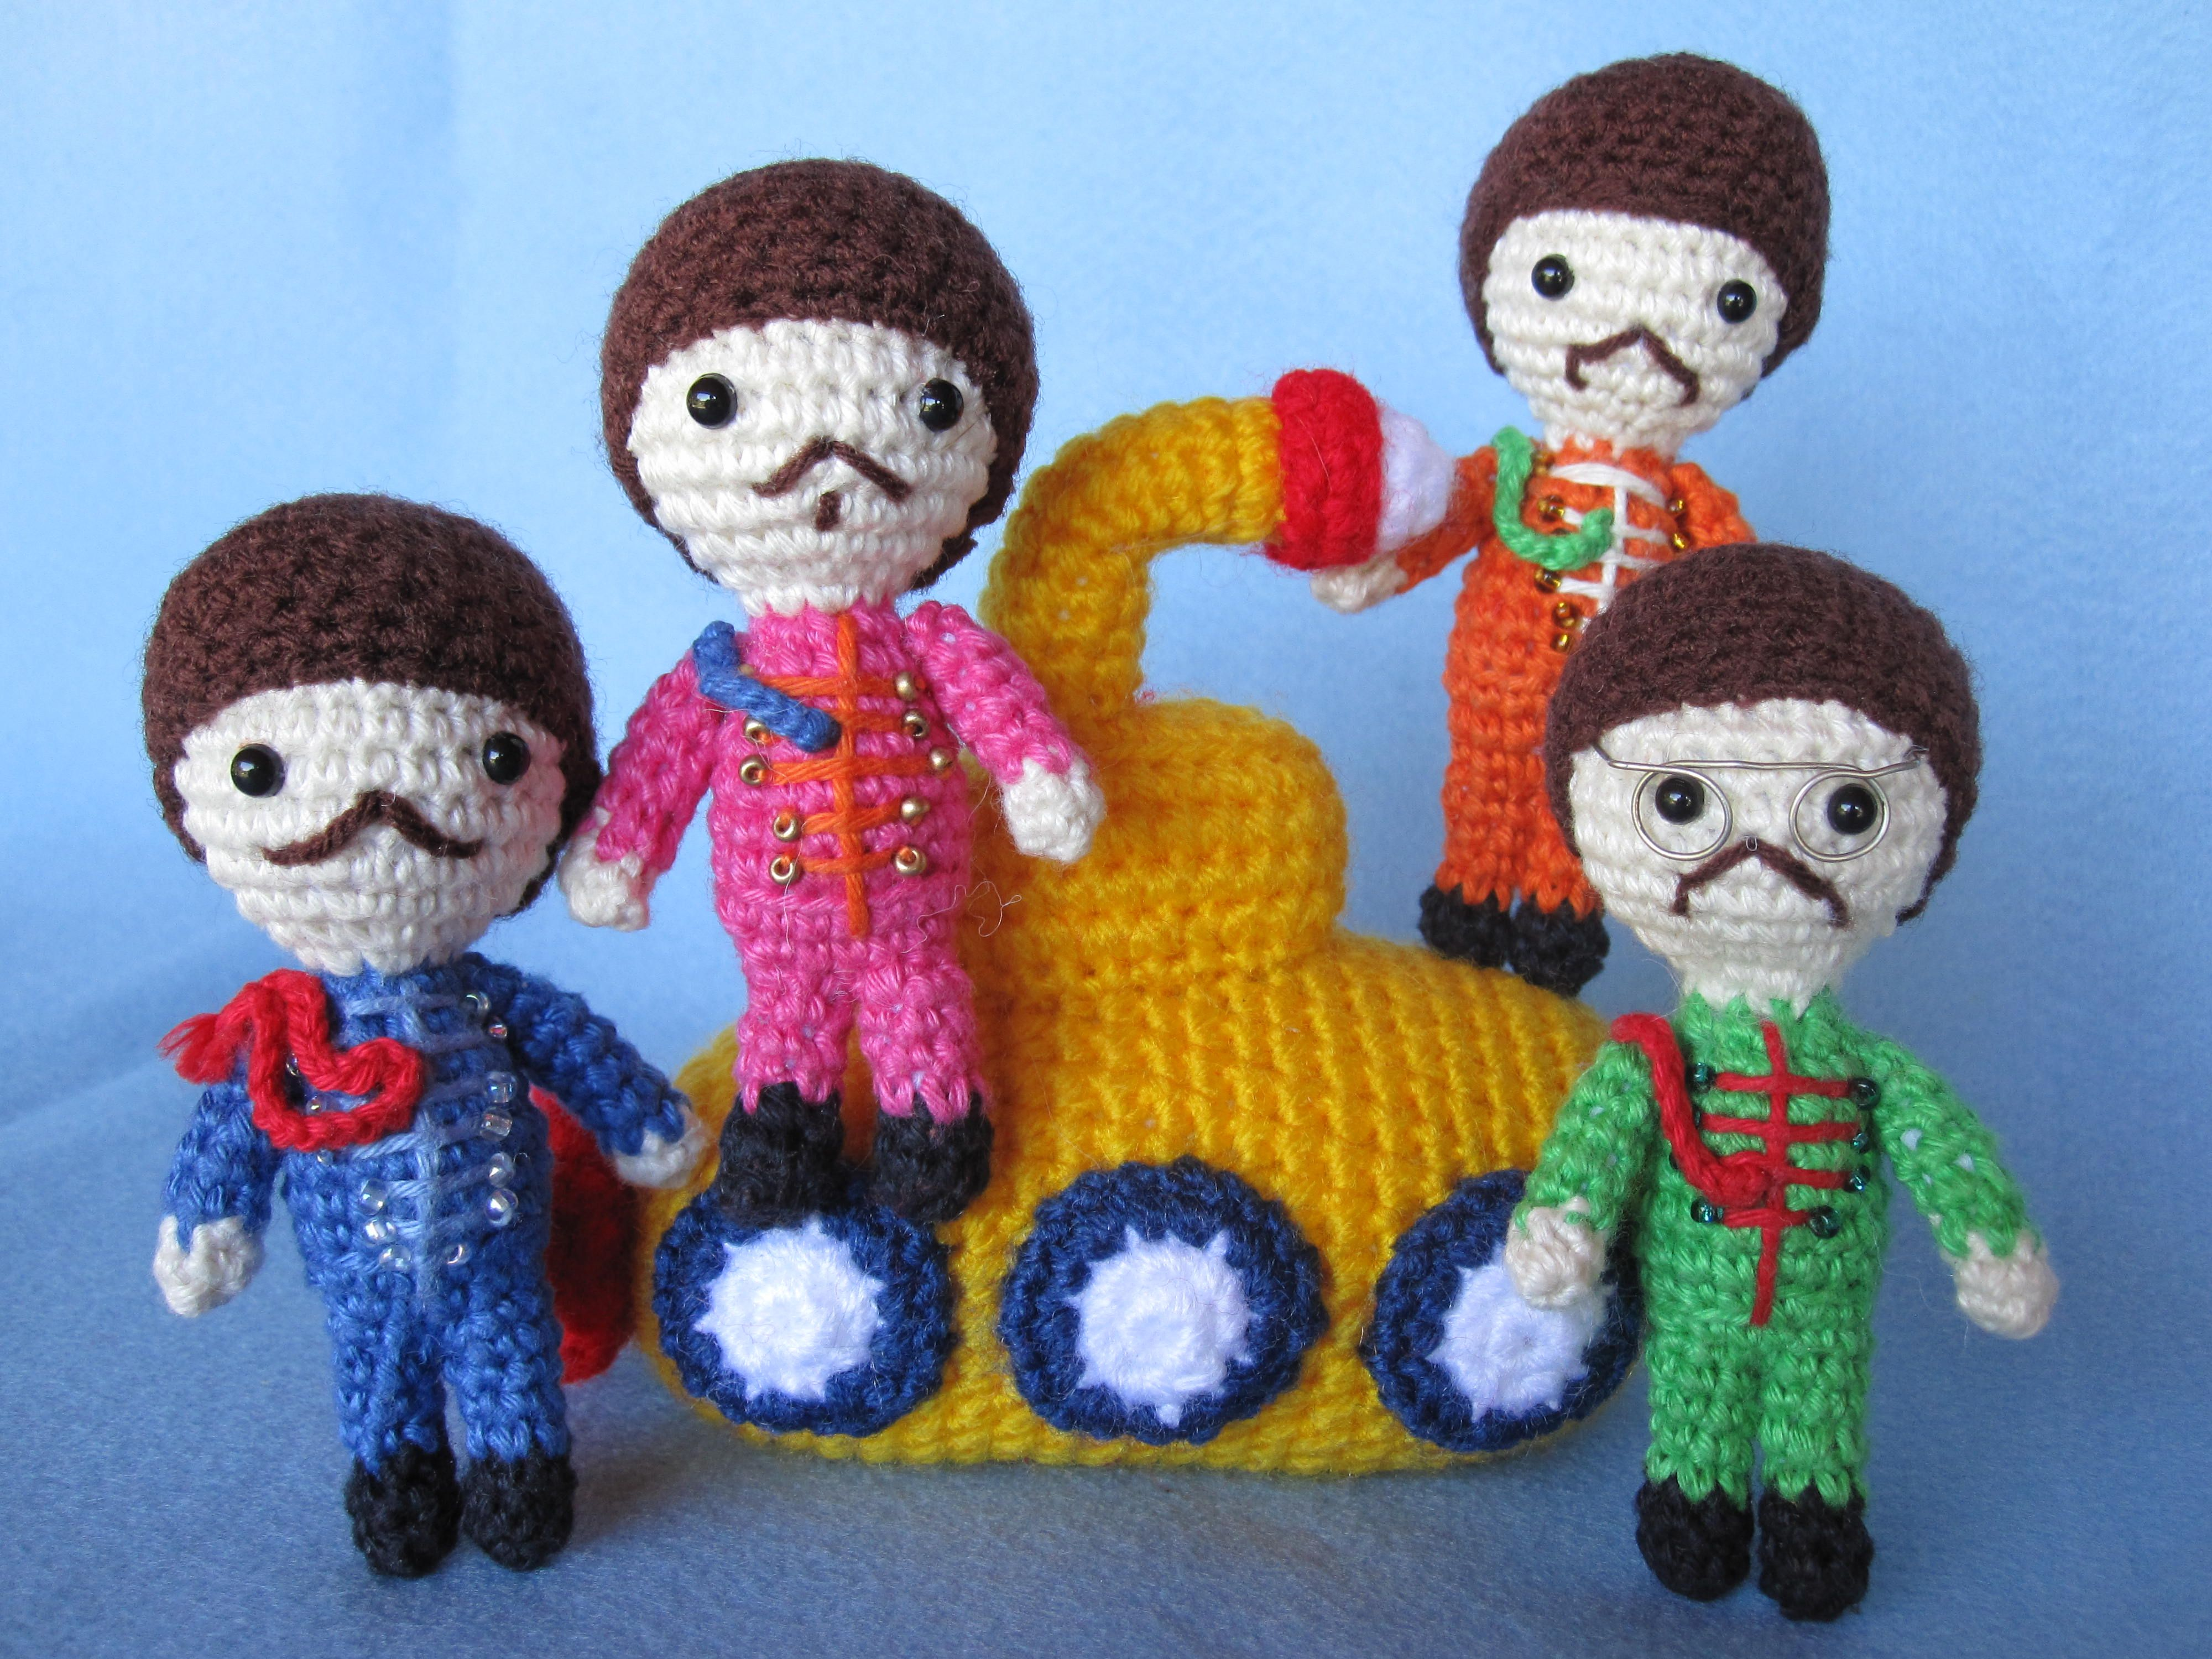 Crochet beatles great inspirationi will learn how to crochet crochet beatles great inspirationi will learn how to crochet because of this bankloansurffo Choice Image